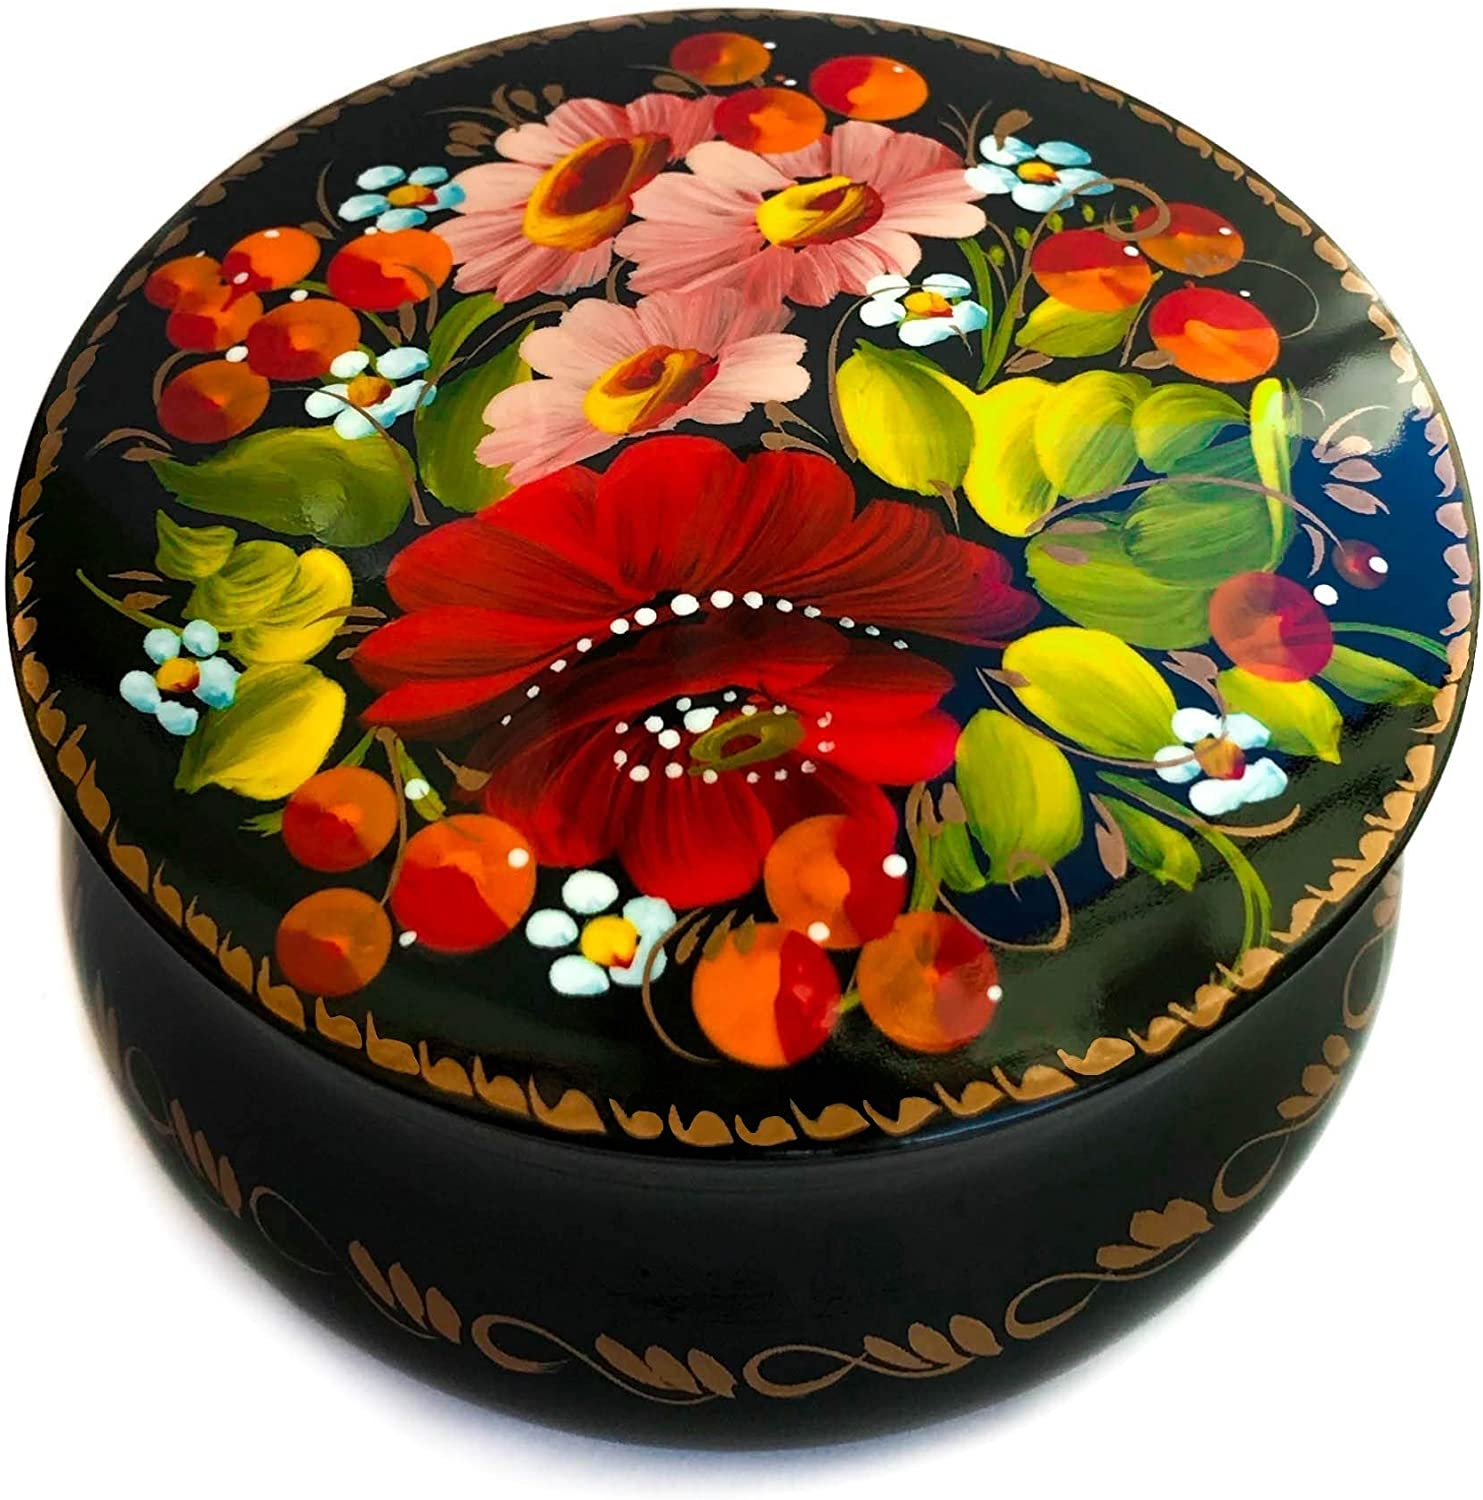 Small Lacquer Box with Hand Painted Flowers for Earrings Necklace, Rings, Nice Gift for Girls and Women